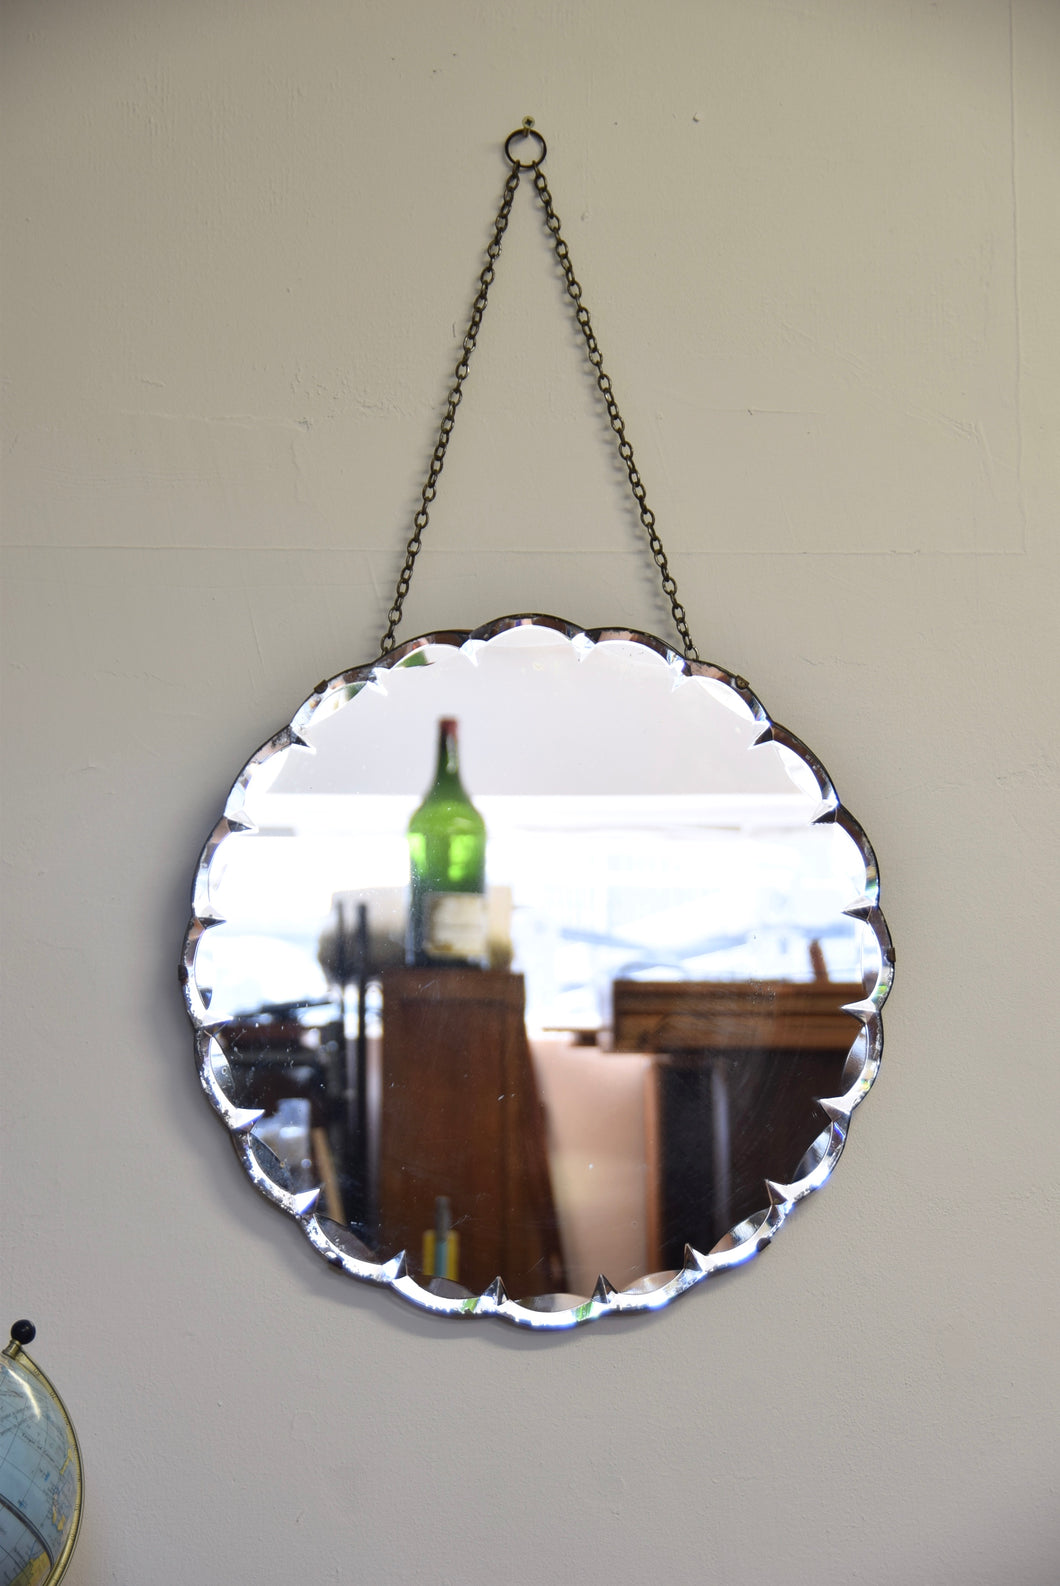 Circular Shaped Mirror Bevelled Edged With Chain